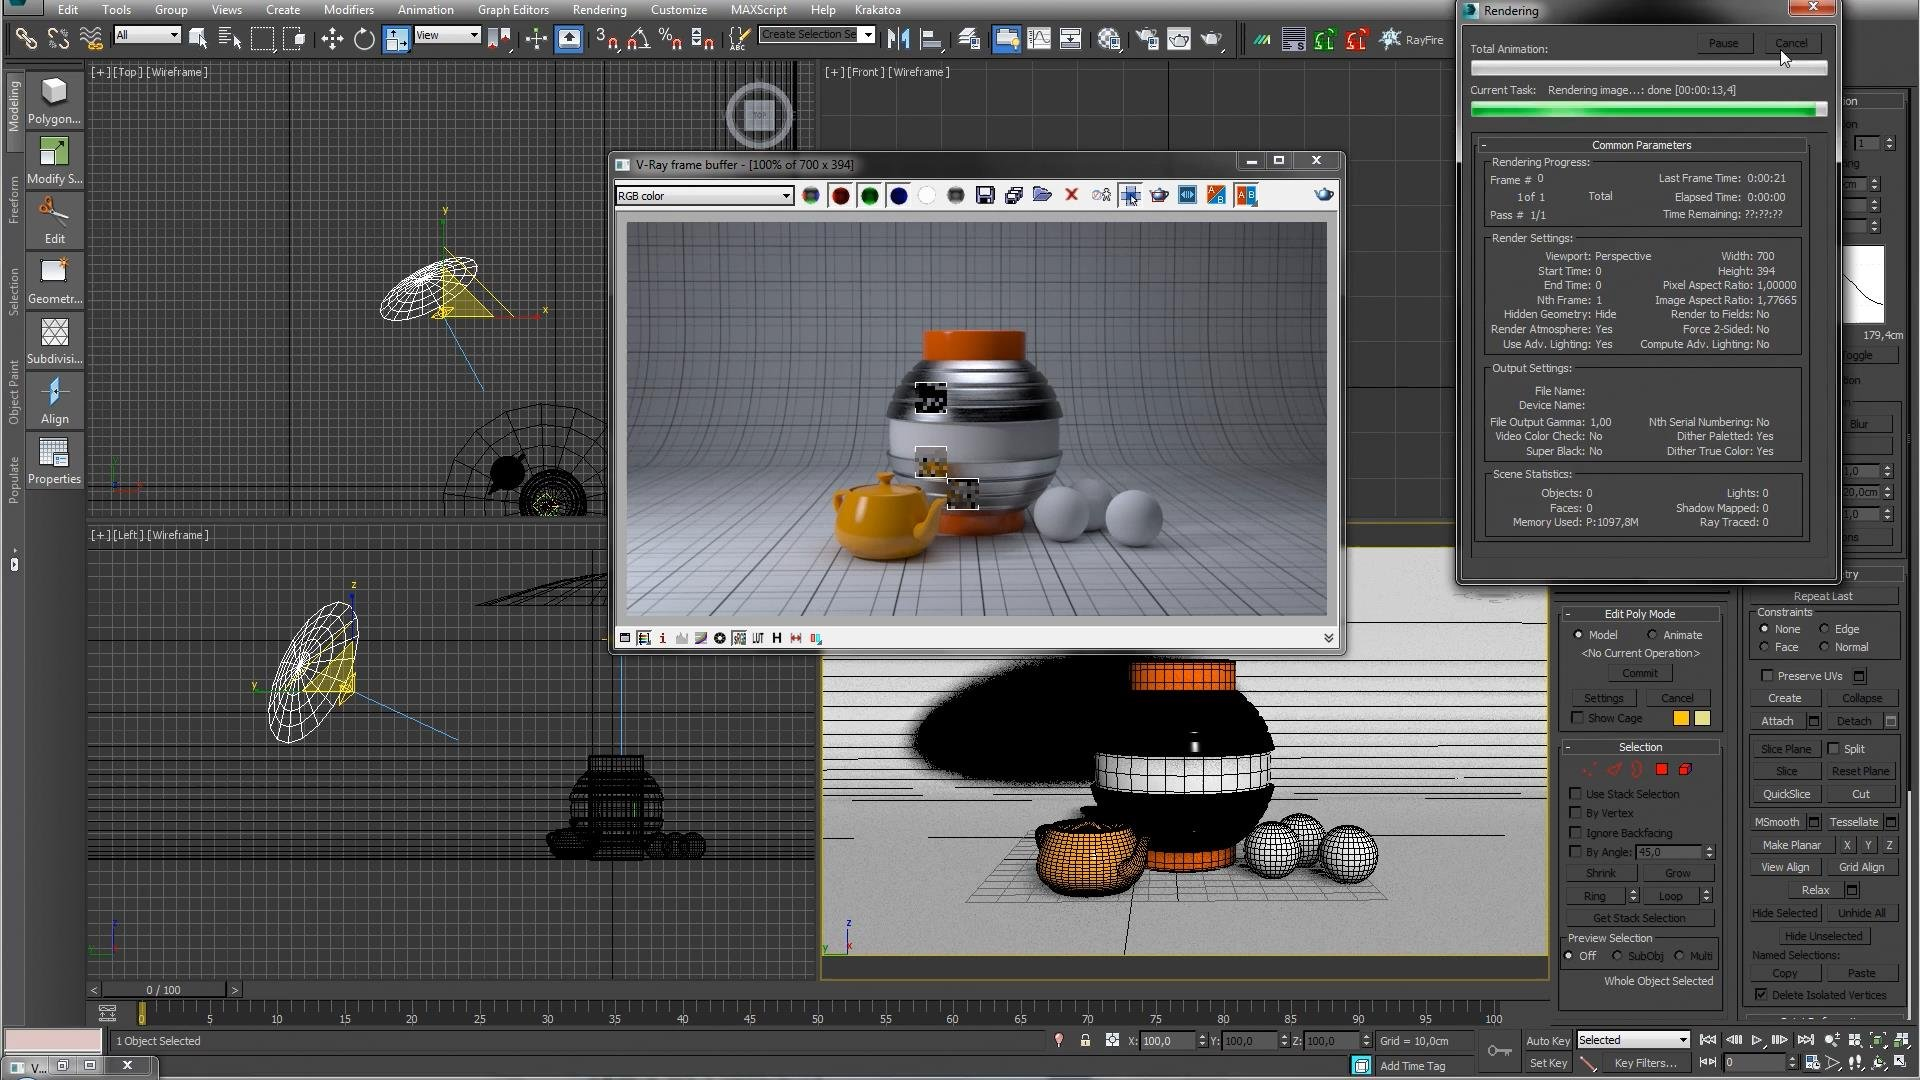 V-ray for 3ds max 2011 x64 торрент